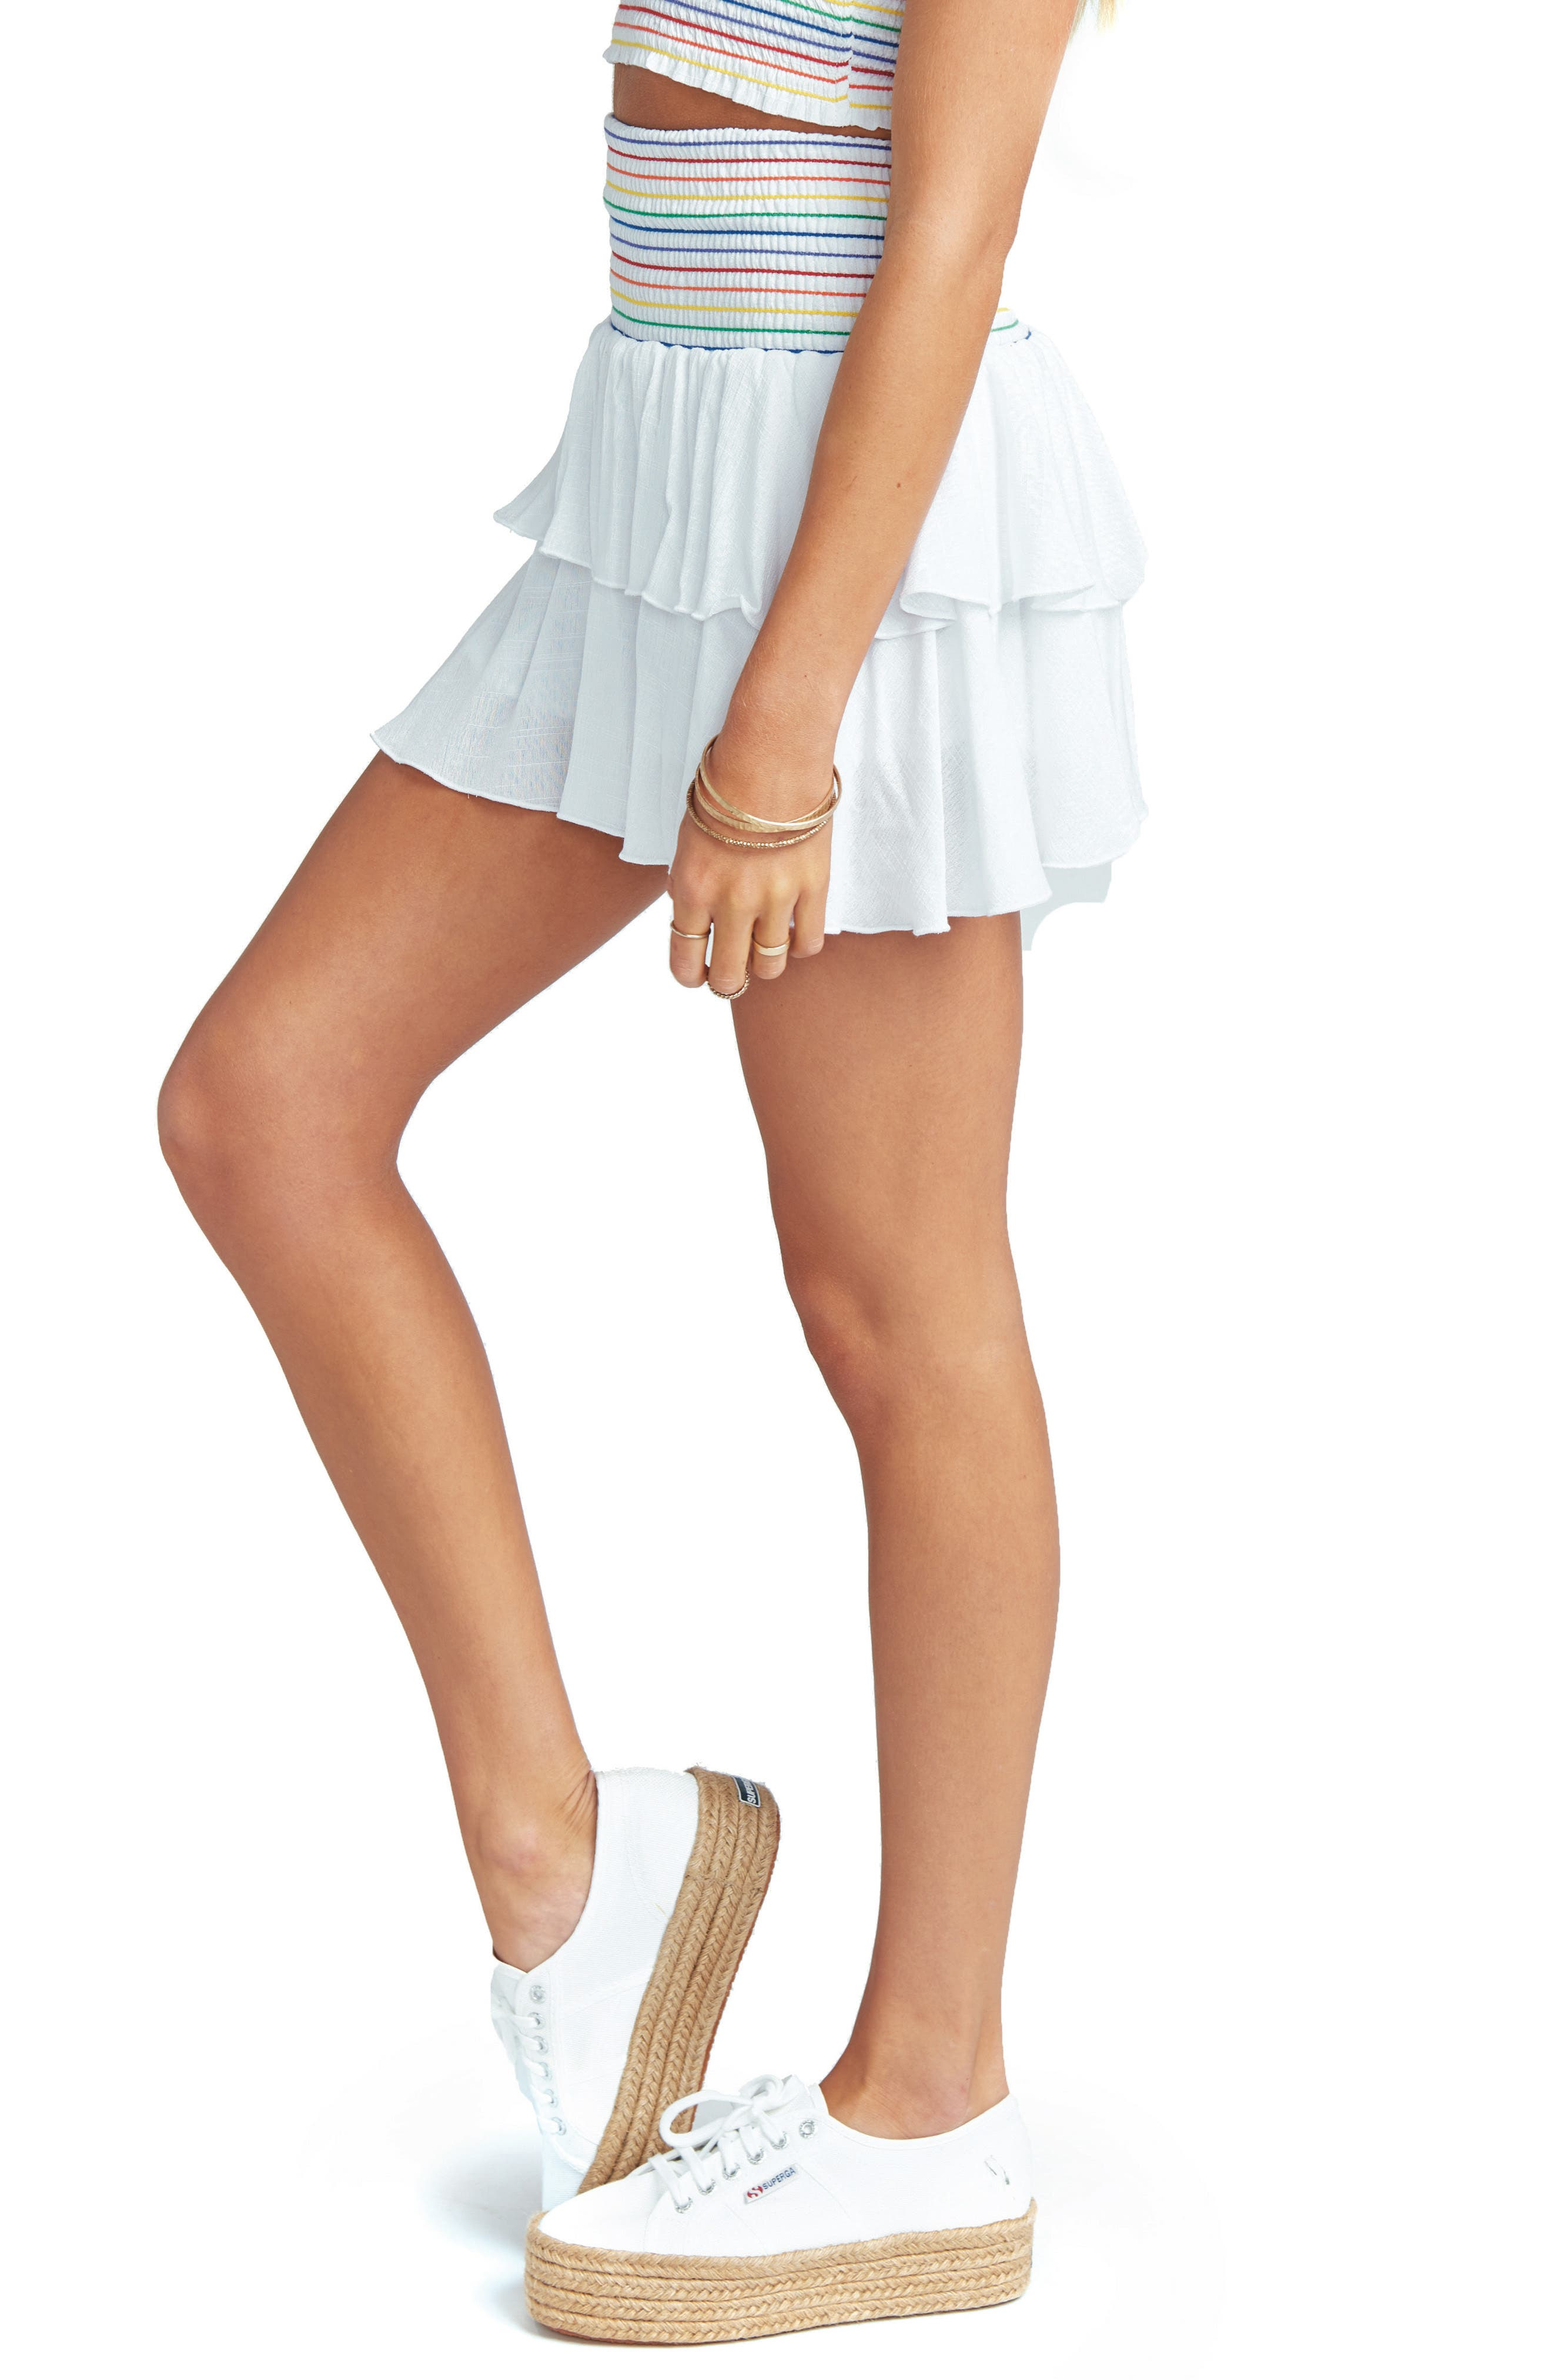 Frolick Ruffle Skort,                             Alternate thumbnail 4, color,                             White Cruise With Rainbow